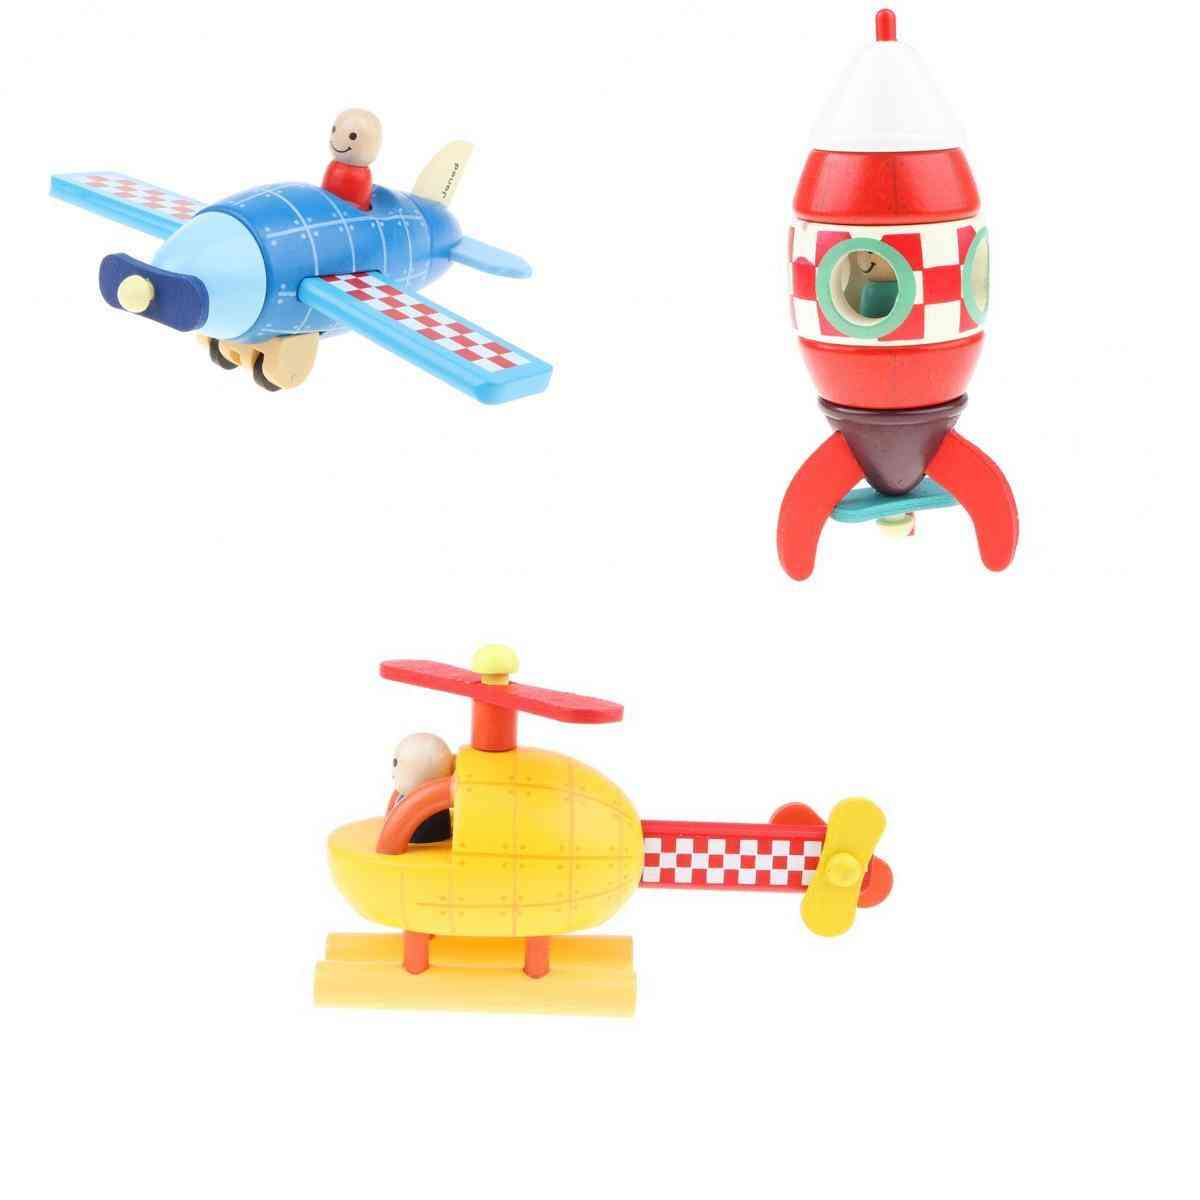 Wooden Assembled Magnetic Aircraft Model For Kids Toddlers Educational Toy,